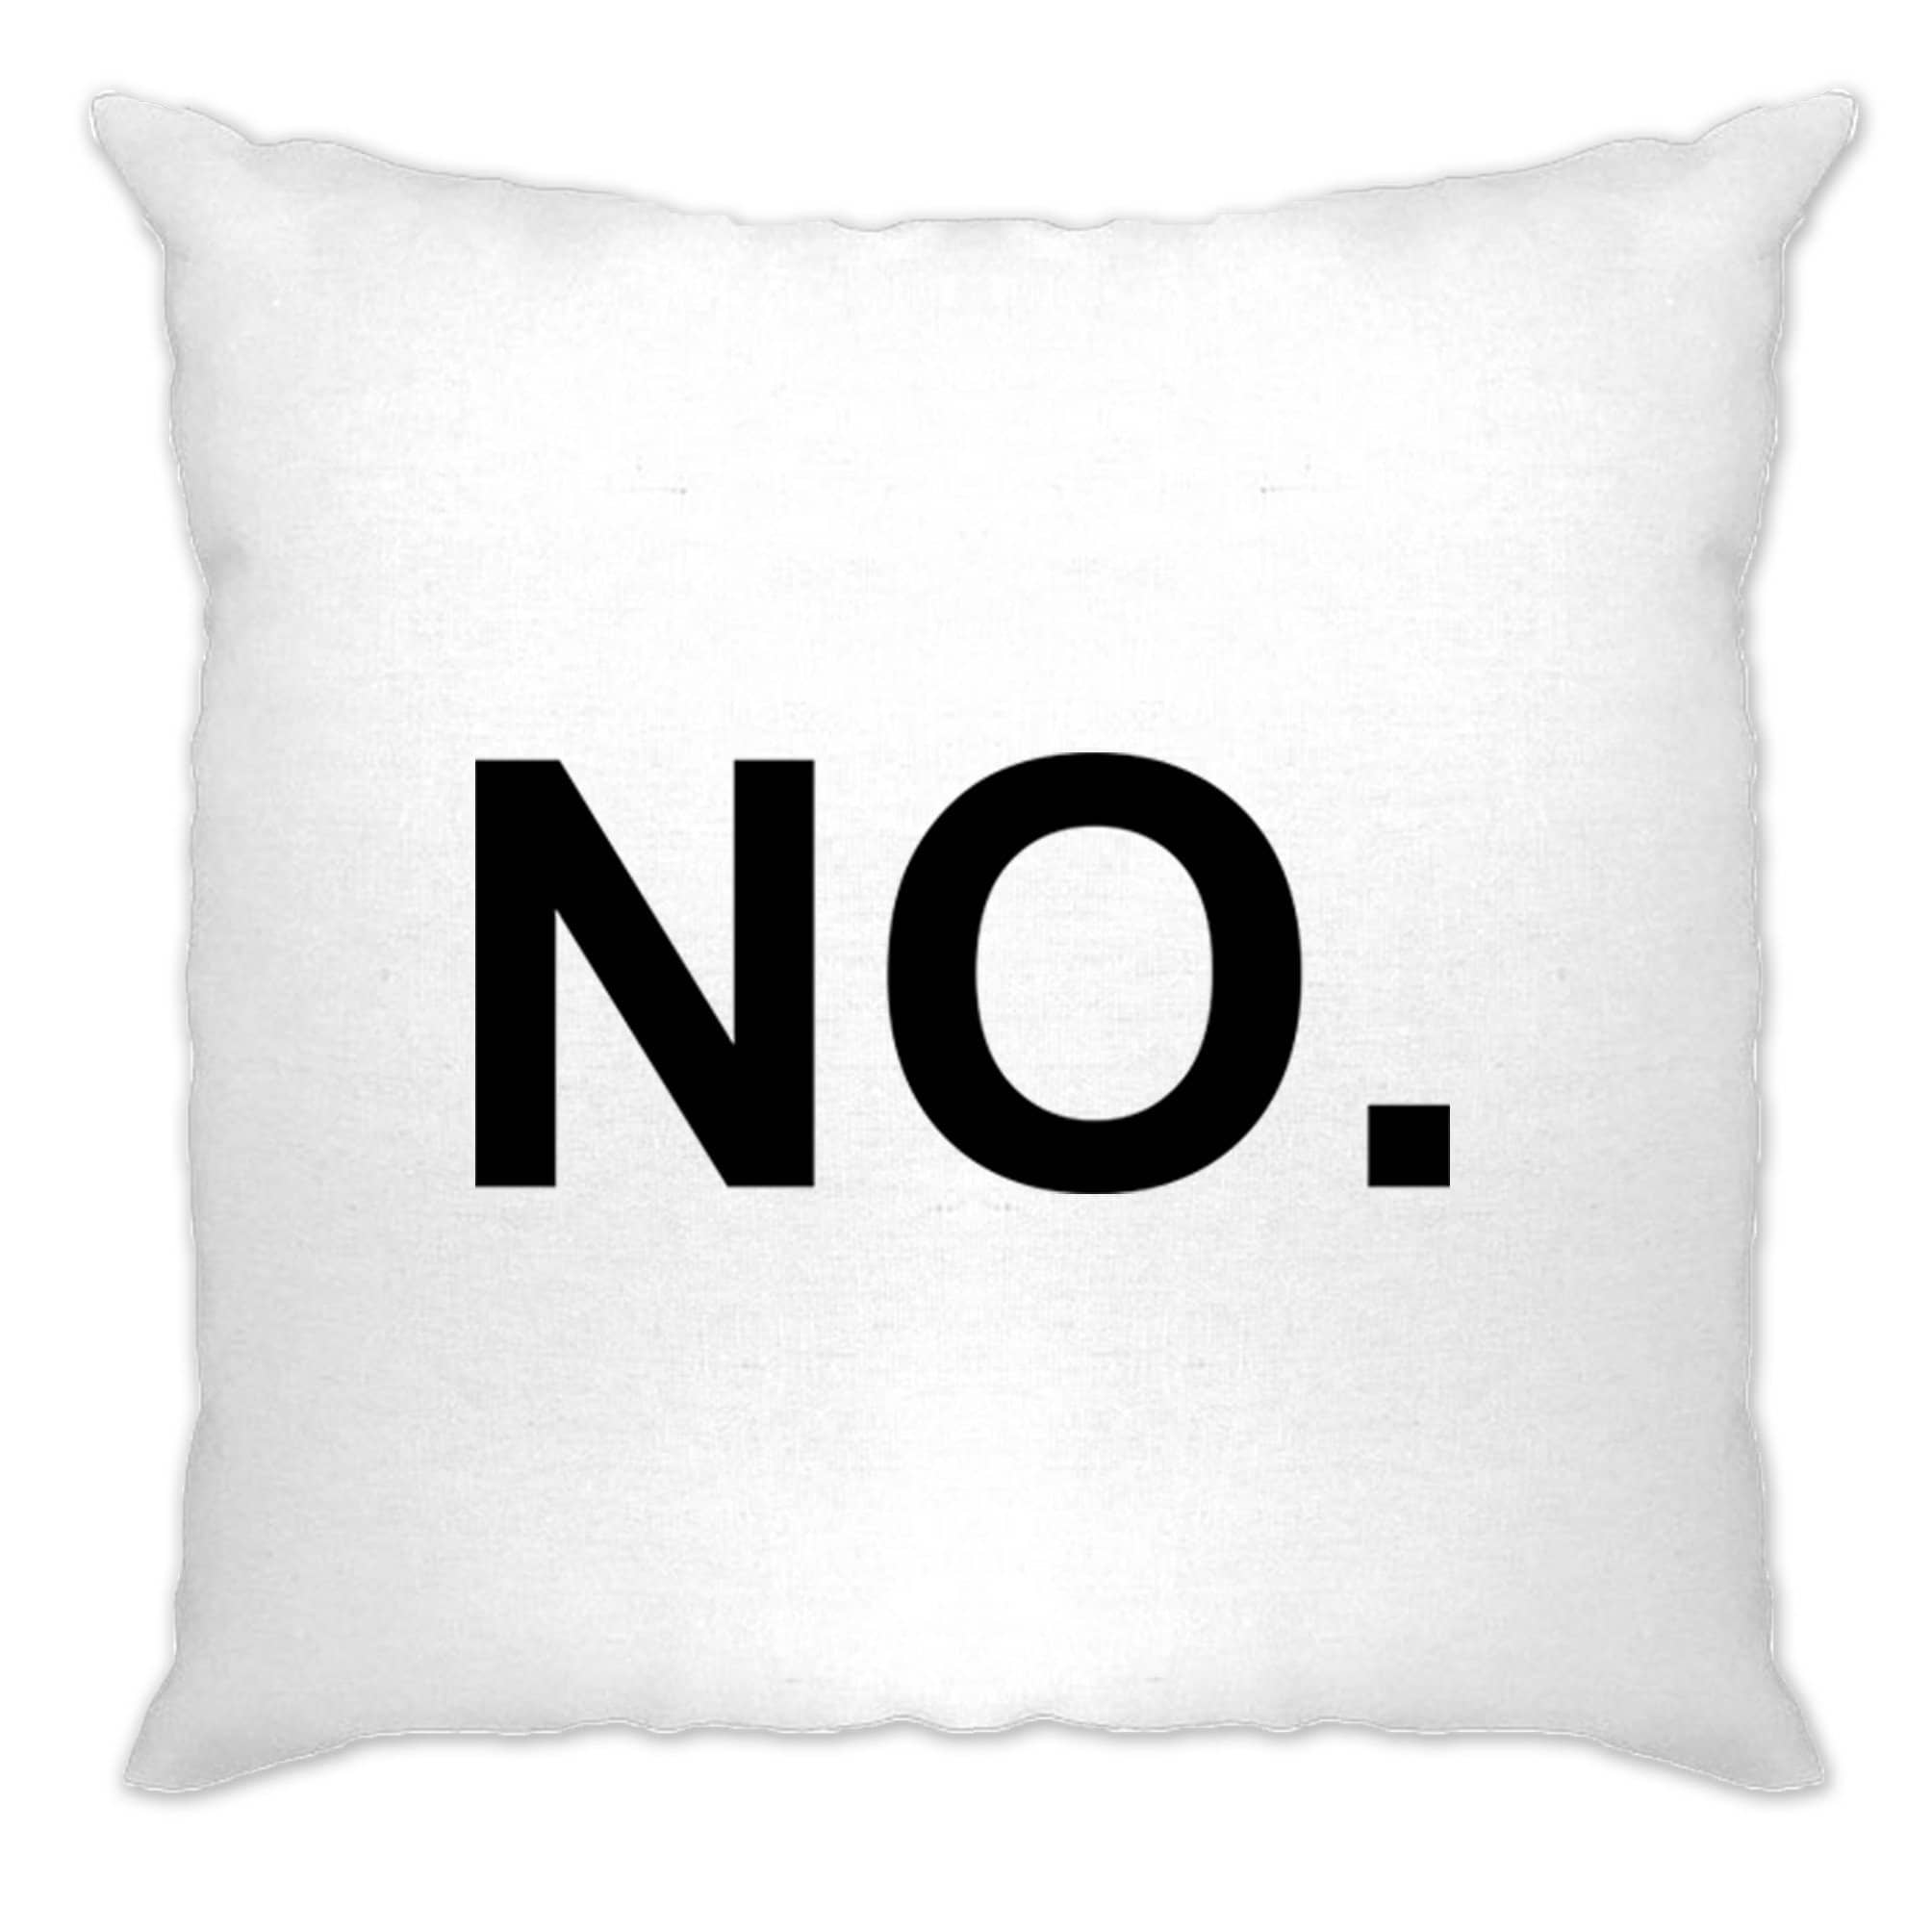 Novelty Cushion Cover With Just The Word No.